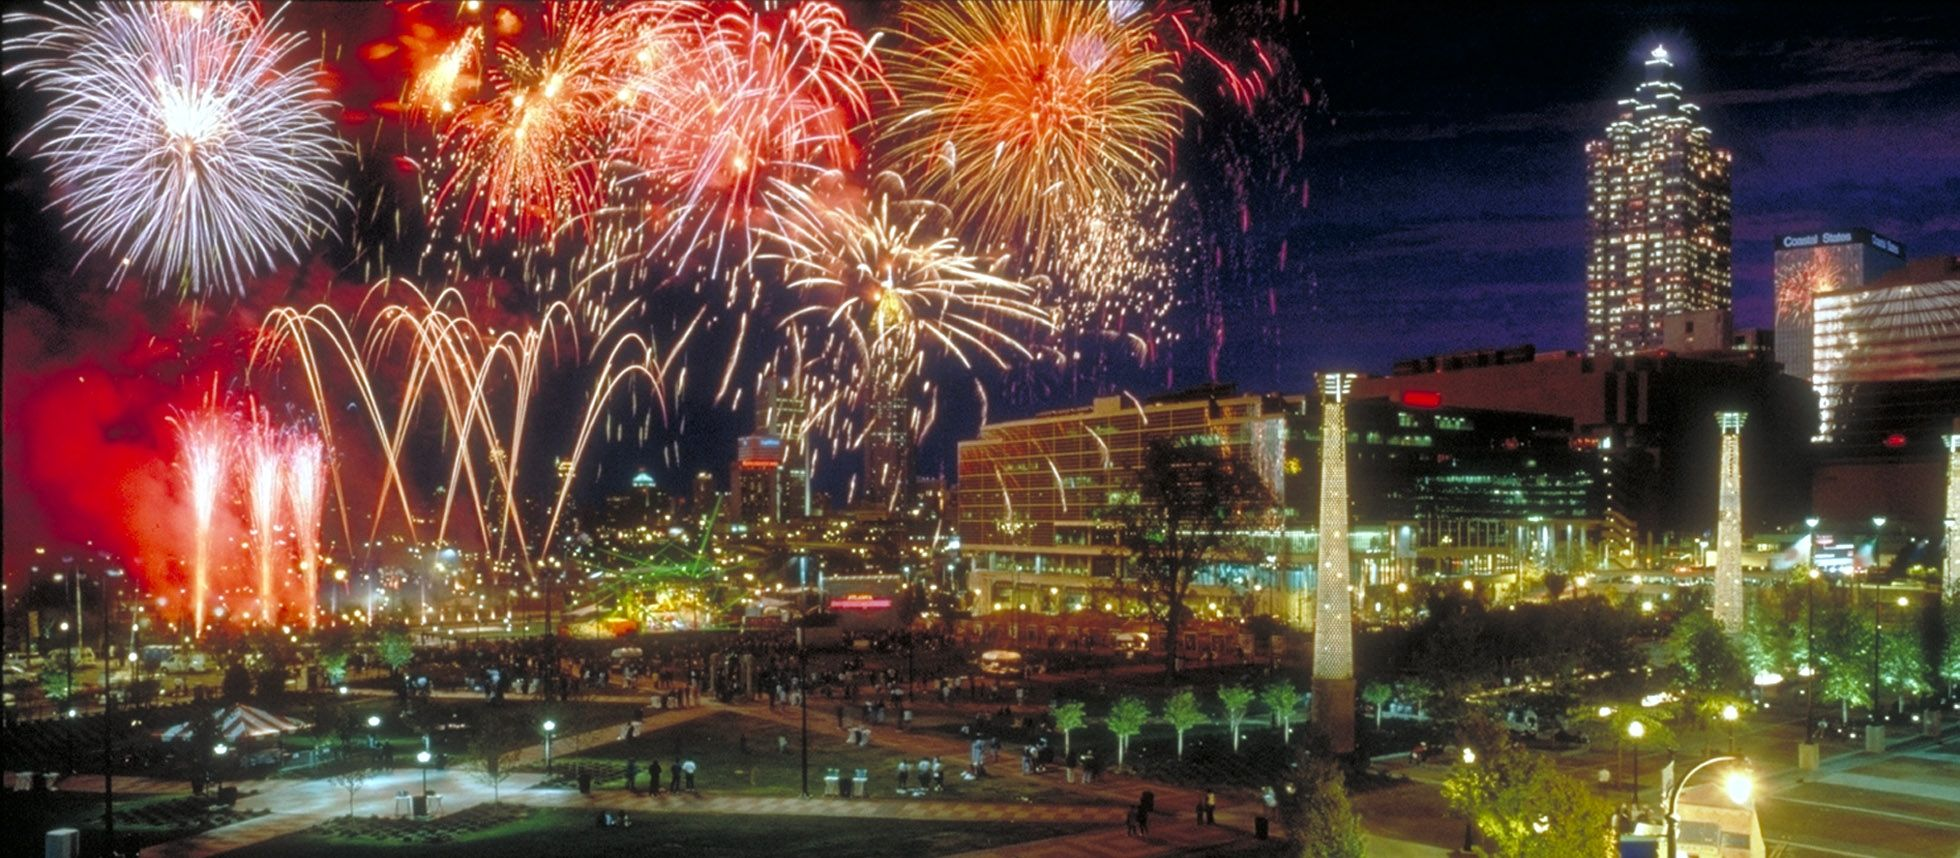 Happy 4th Of July From The Folks At Rest Revolution 4th Of July Fireworks Centennial Olympic Park Stone Mountain Park